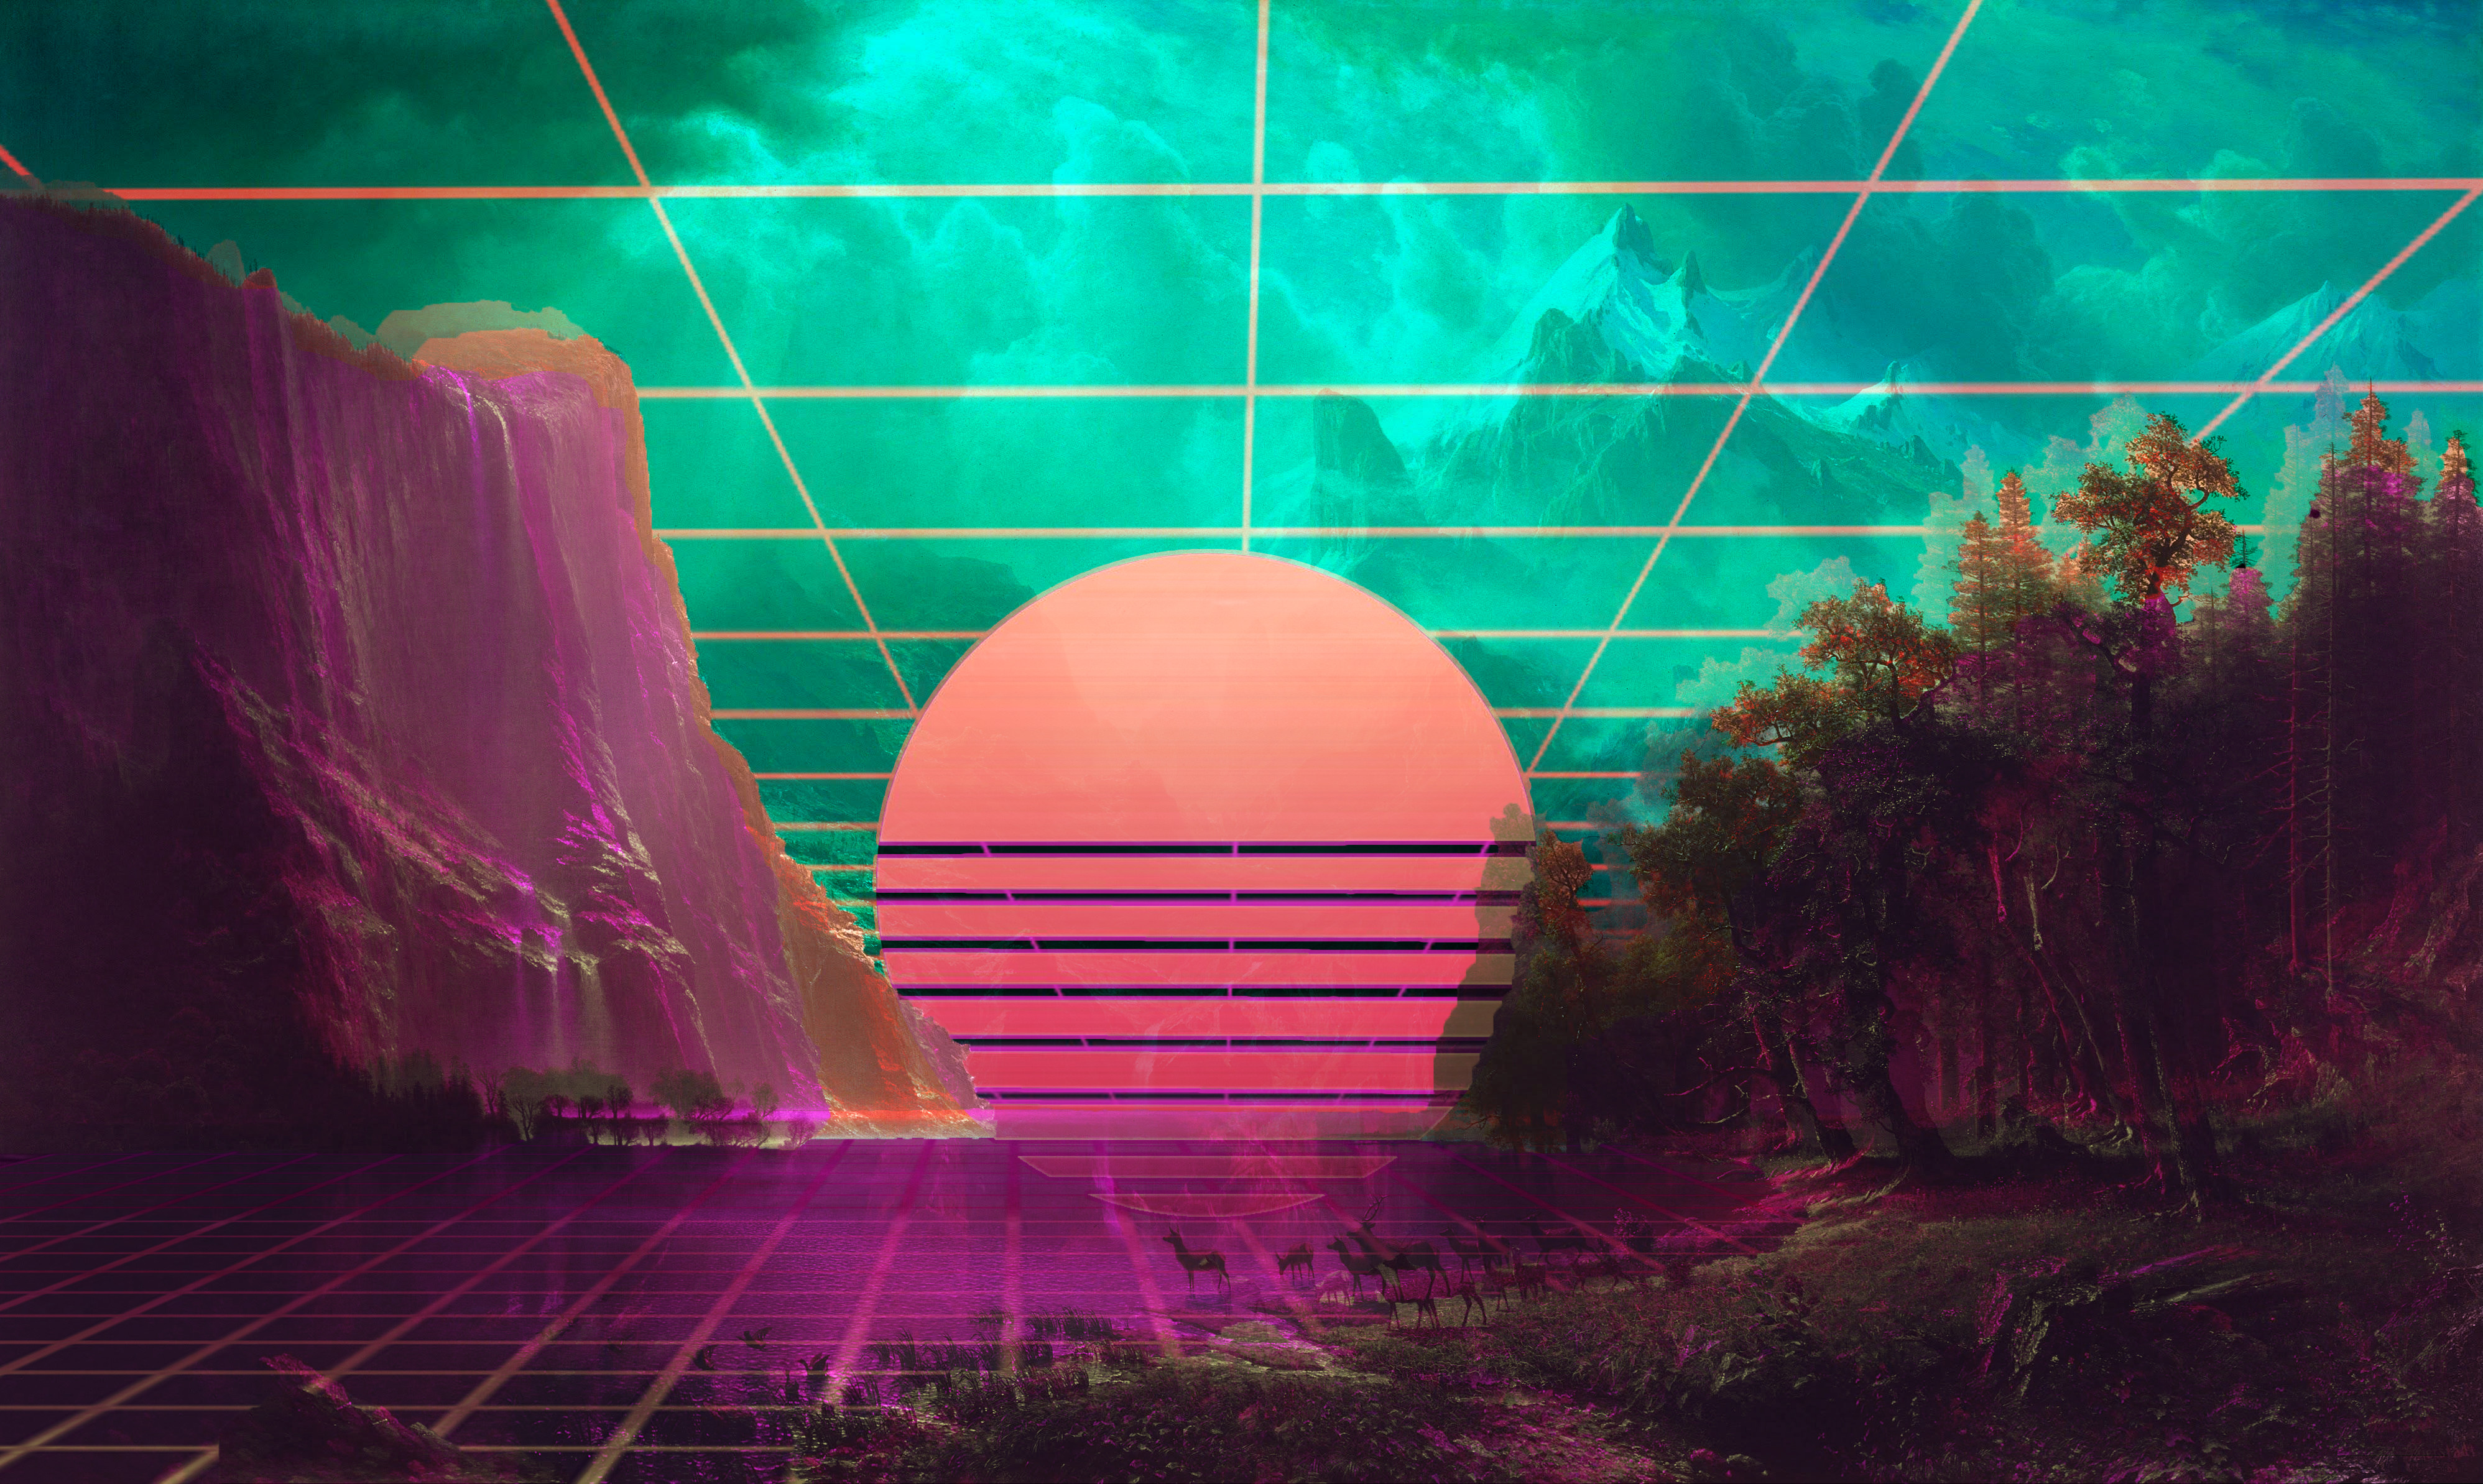 I Tried Make A Vaporwave Wallpaper Hd Wallpaper Retrowave Hd 23493 Hd Wallpaper Backgrounds Download